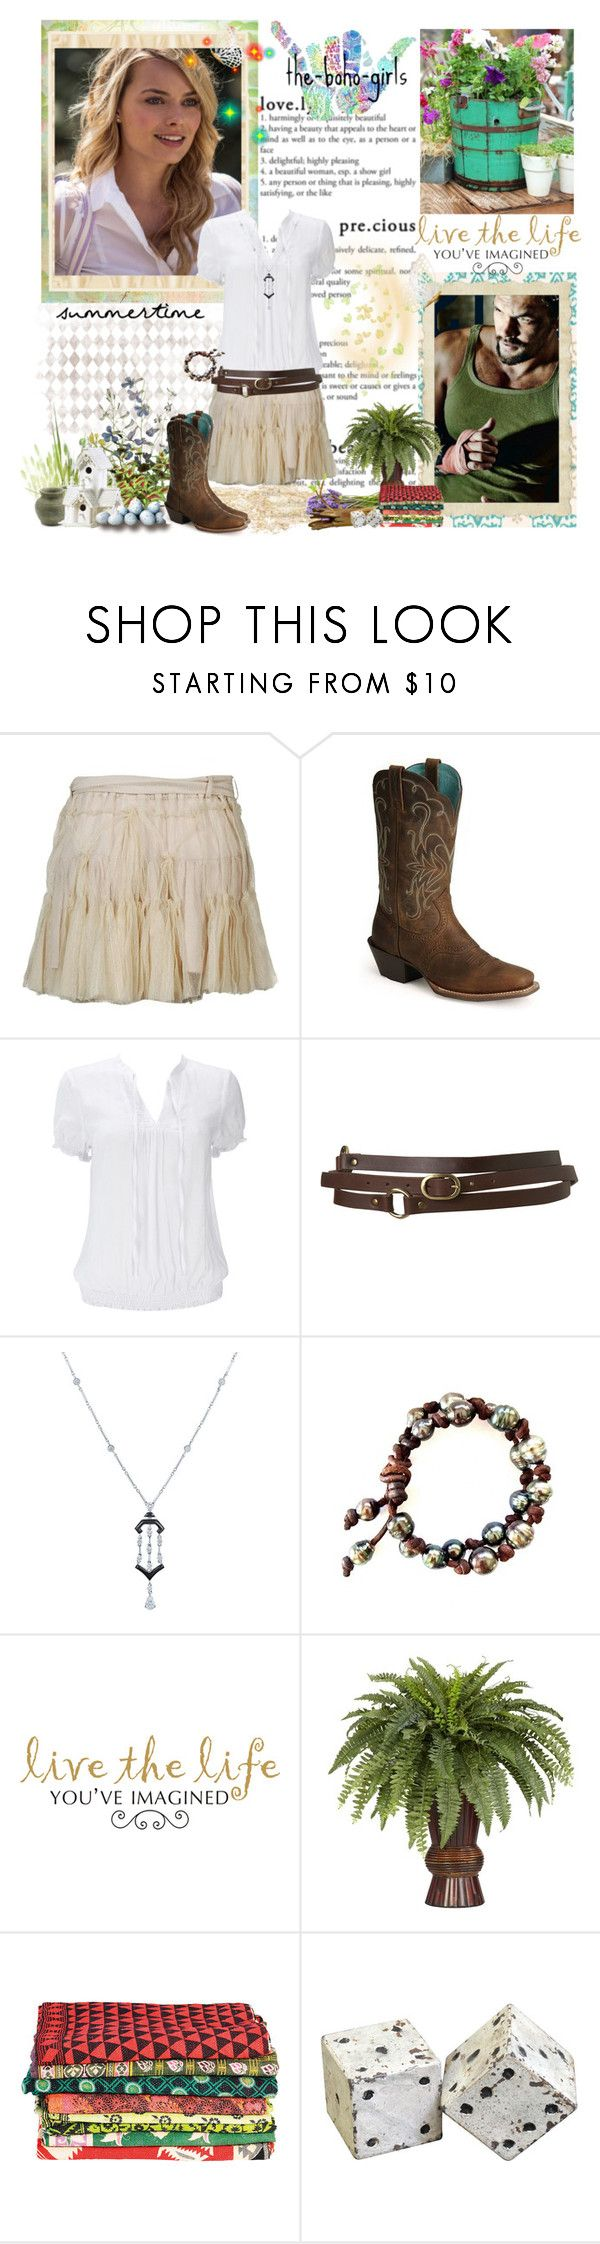 """#281"" by ninhayaritza ❤ liked on Polyvore featuring Anne Valérie Hash, Ariat, Wallis, Topshop, Kwiat, WALL, Nearly Natural and HAY"